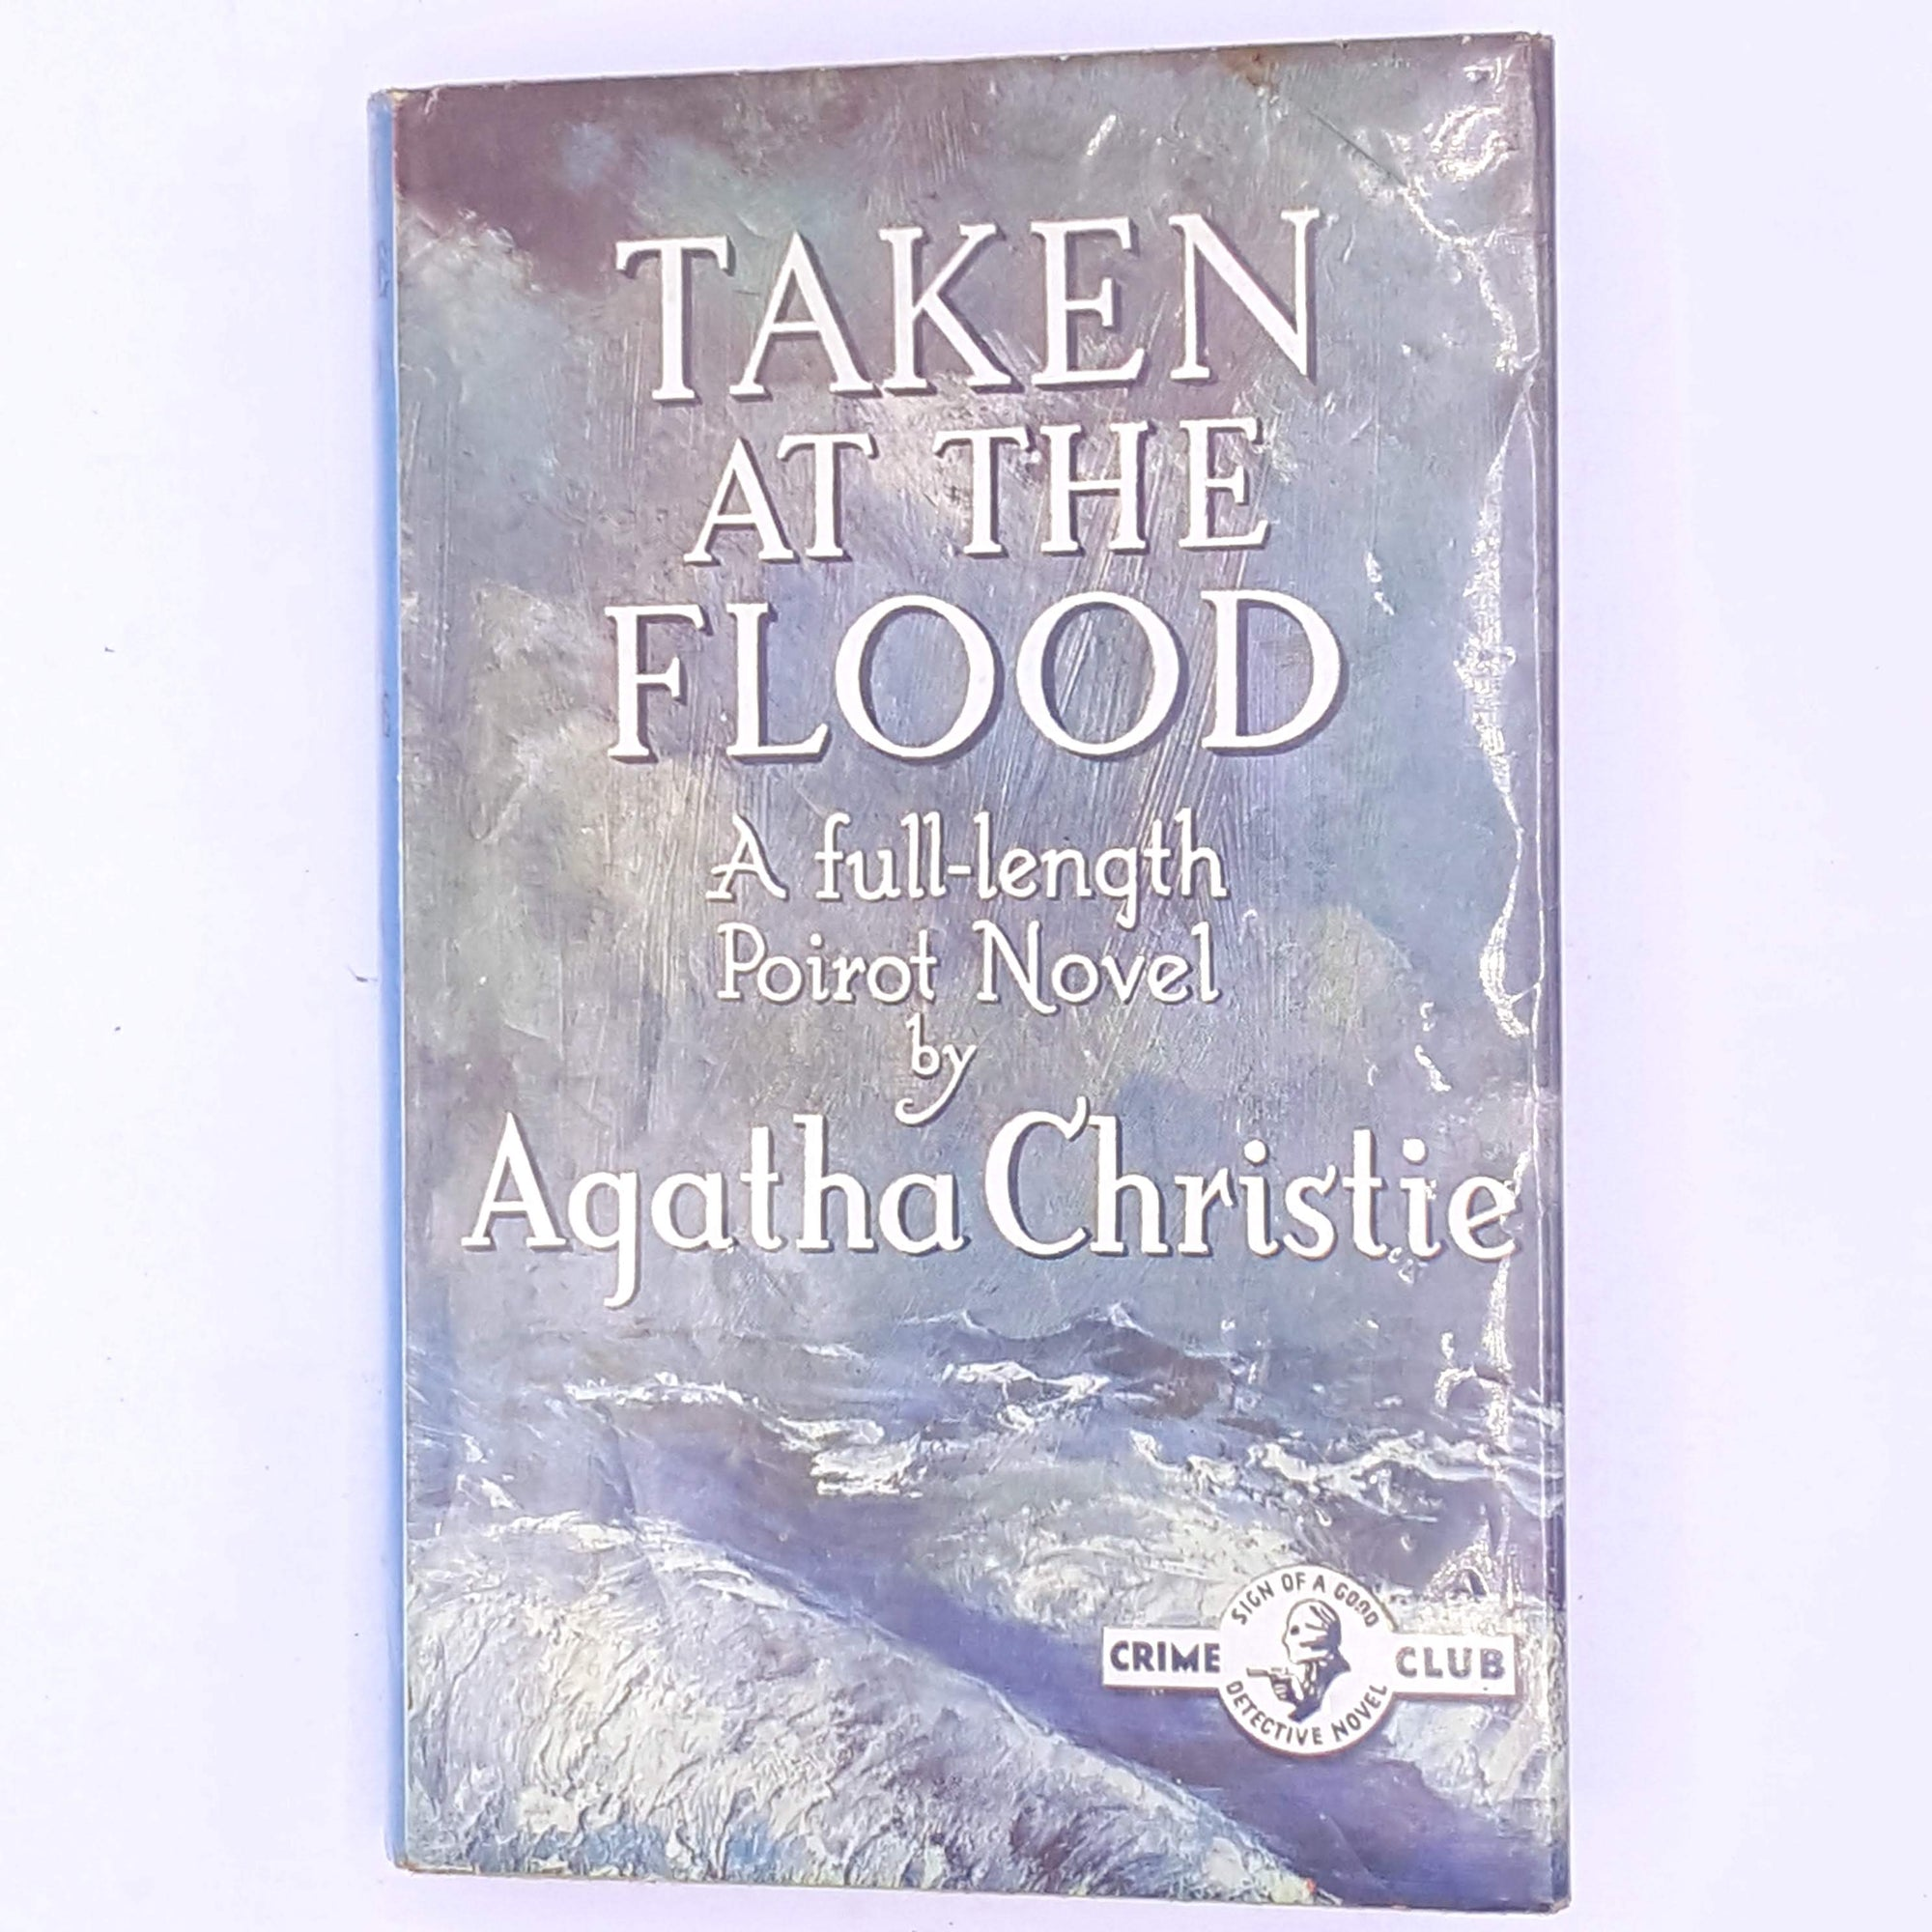 antique-old-Poirot-detective-mystery-murder-mystery-crime-fiction-novels-female-author-patterned-agatha-christie-taken-at-the-flood-thrift-decorative-vintage-country-house-library-books-classic-